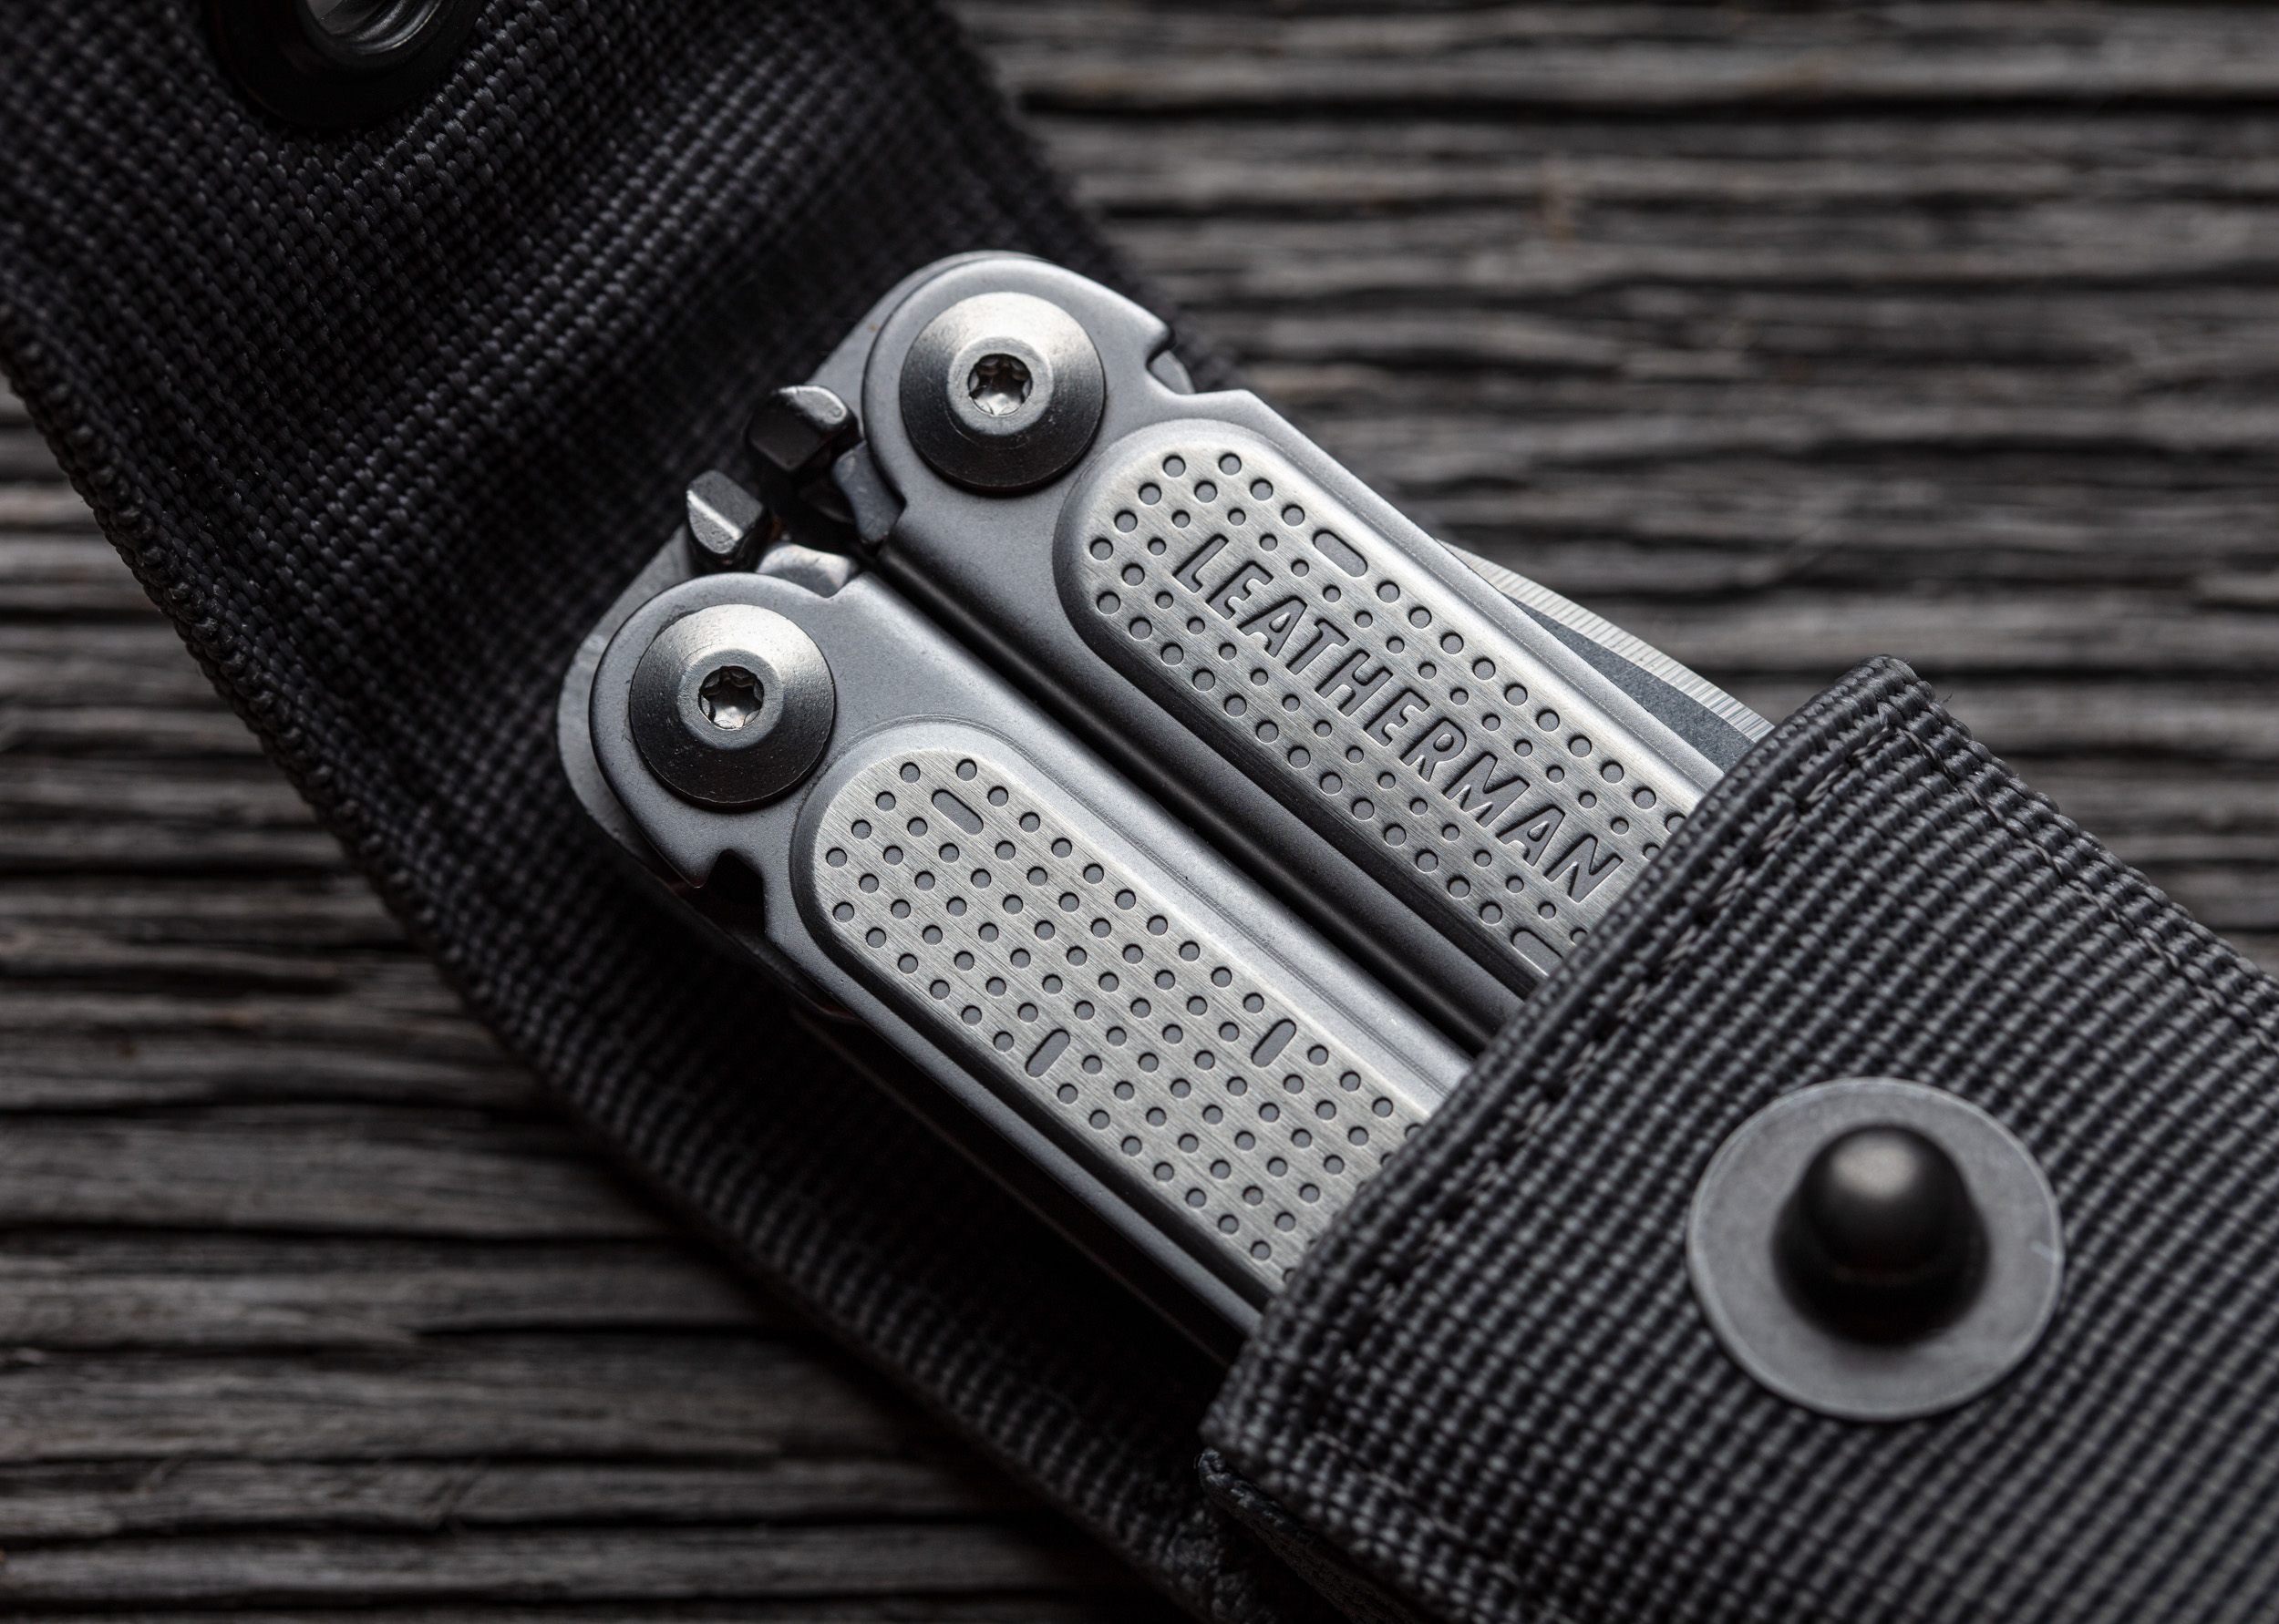 Product photograph of a Leatherman multi tool on wood background